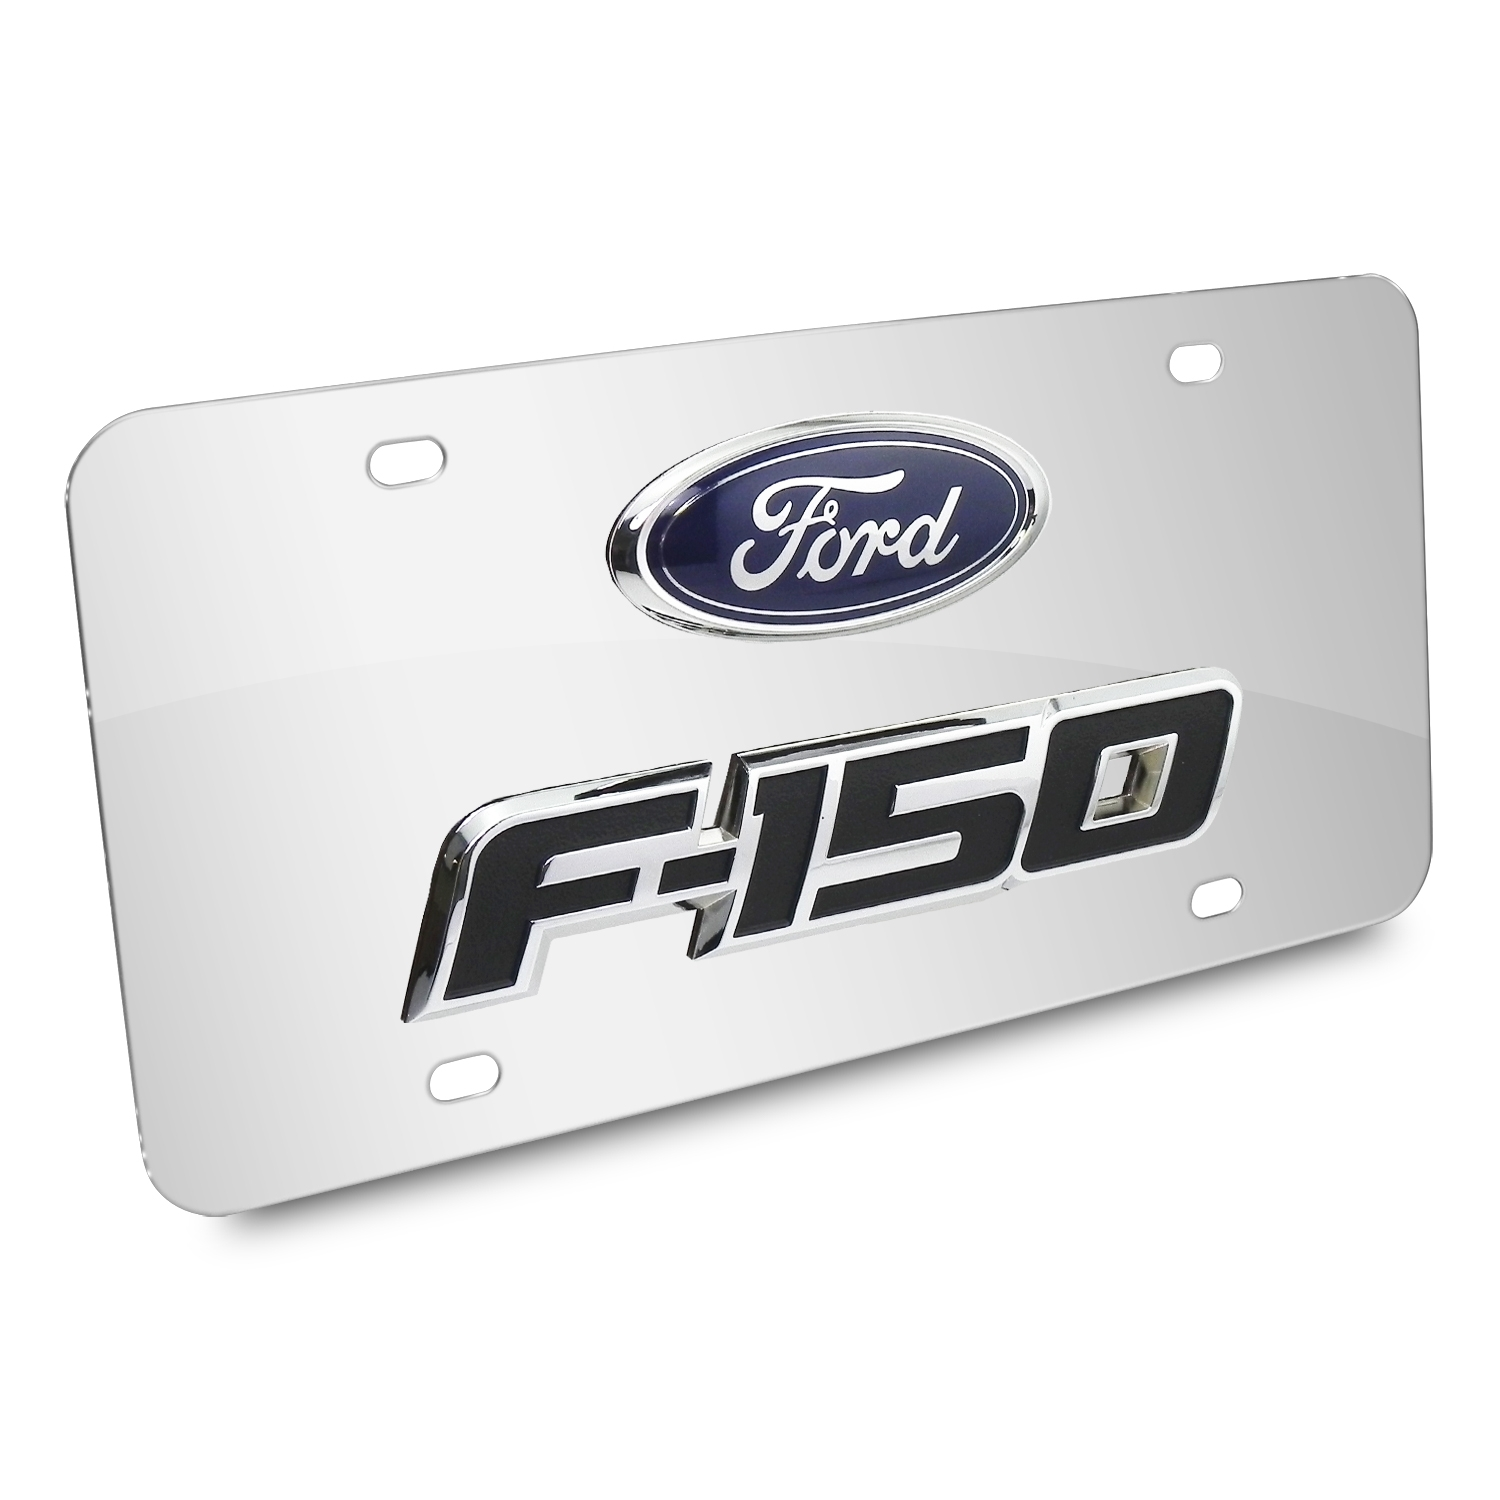 Ford F-150 Double 3D Logo Chrome Stainless Steel License Plate